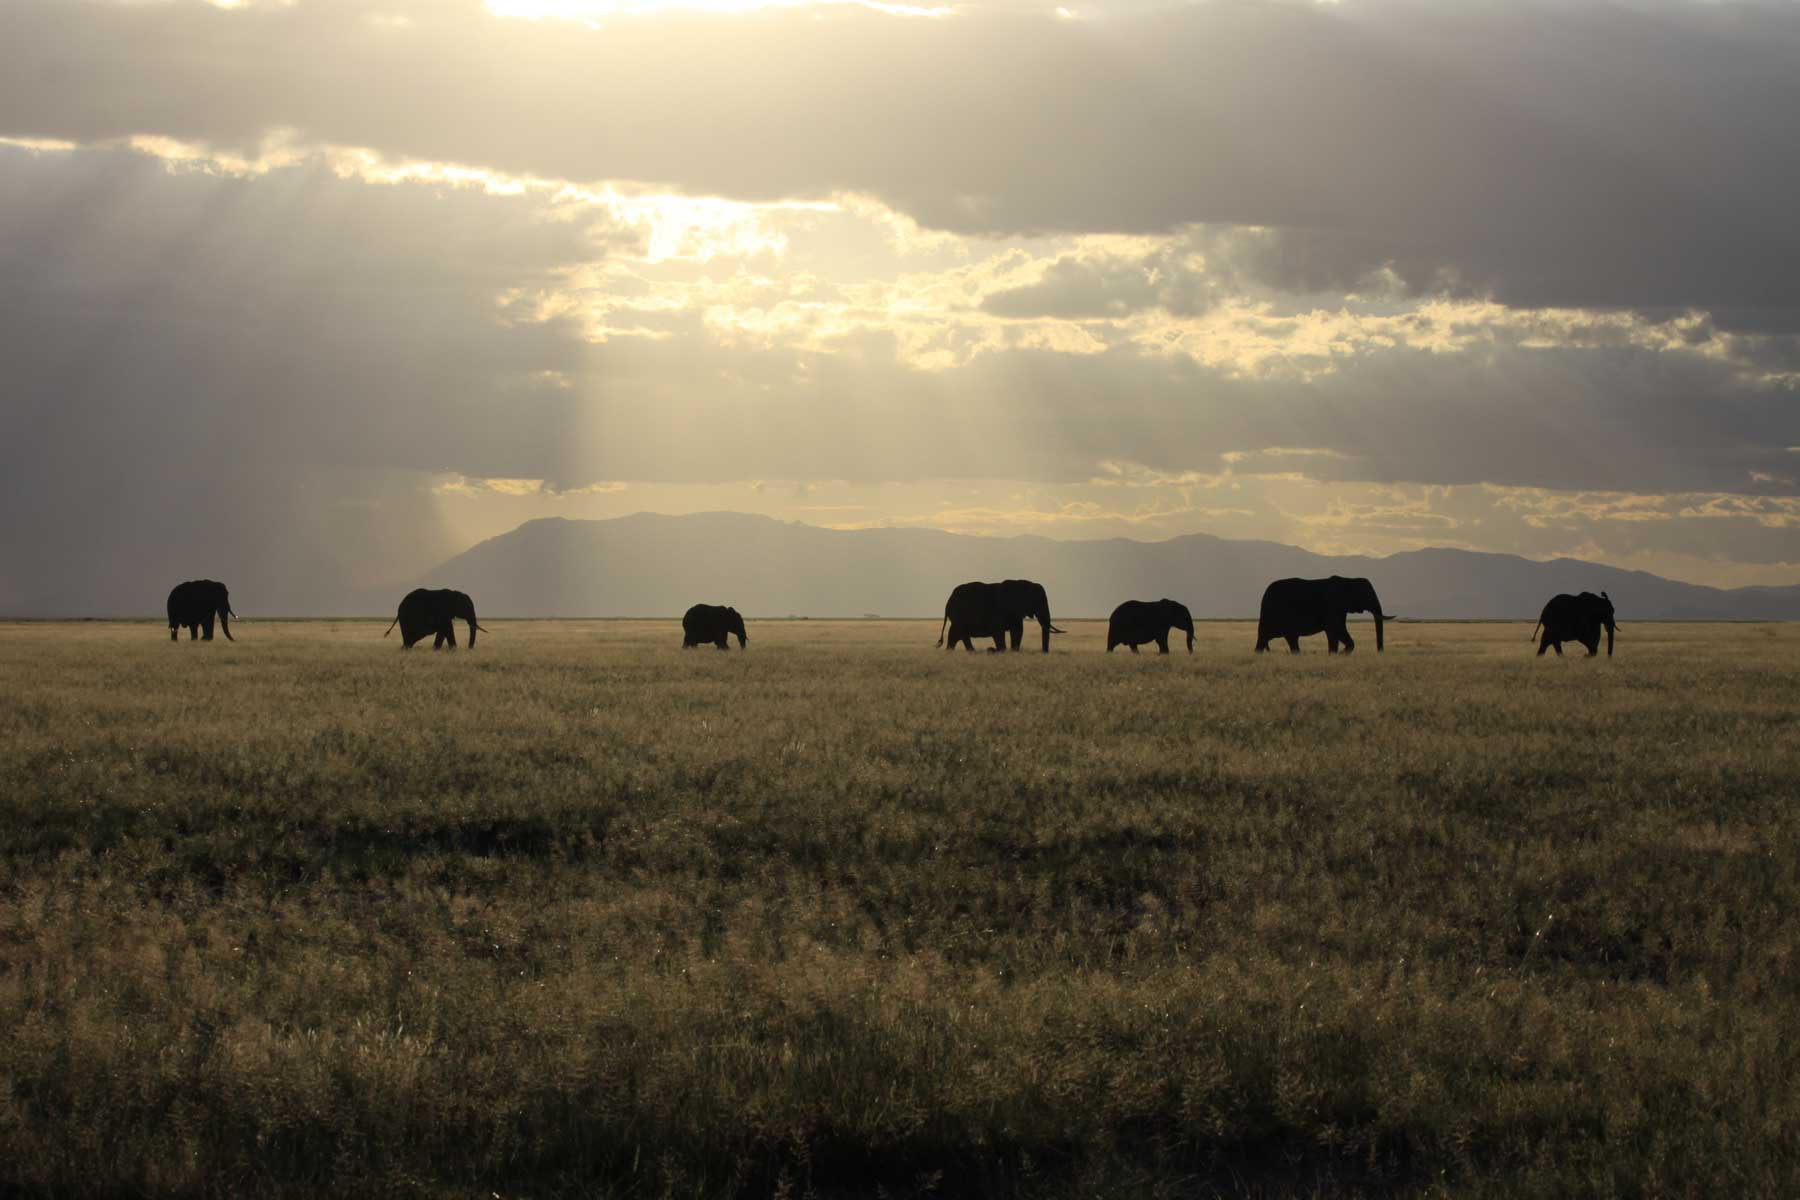 The ins and outs of elephant evolution